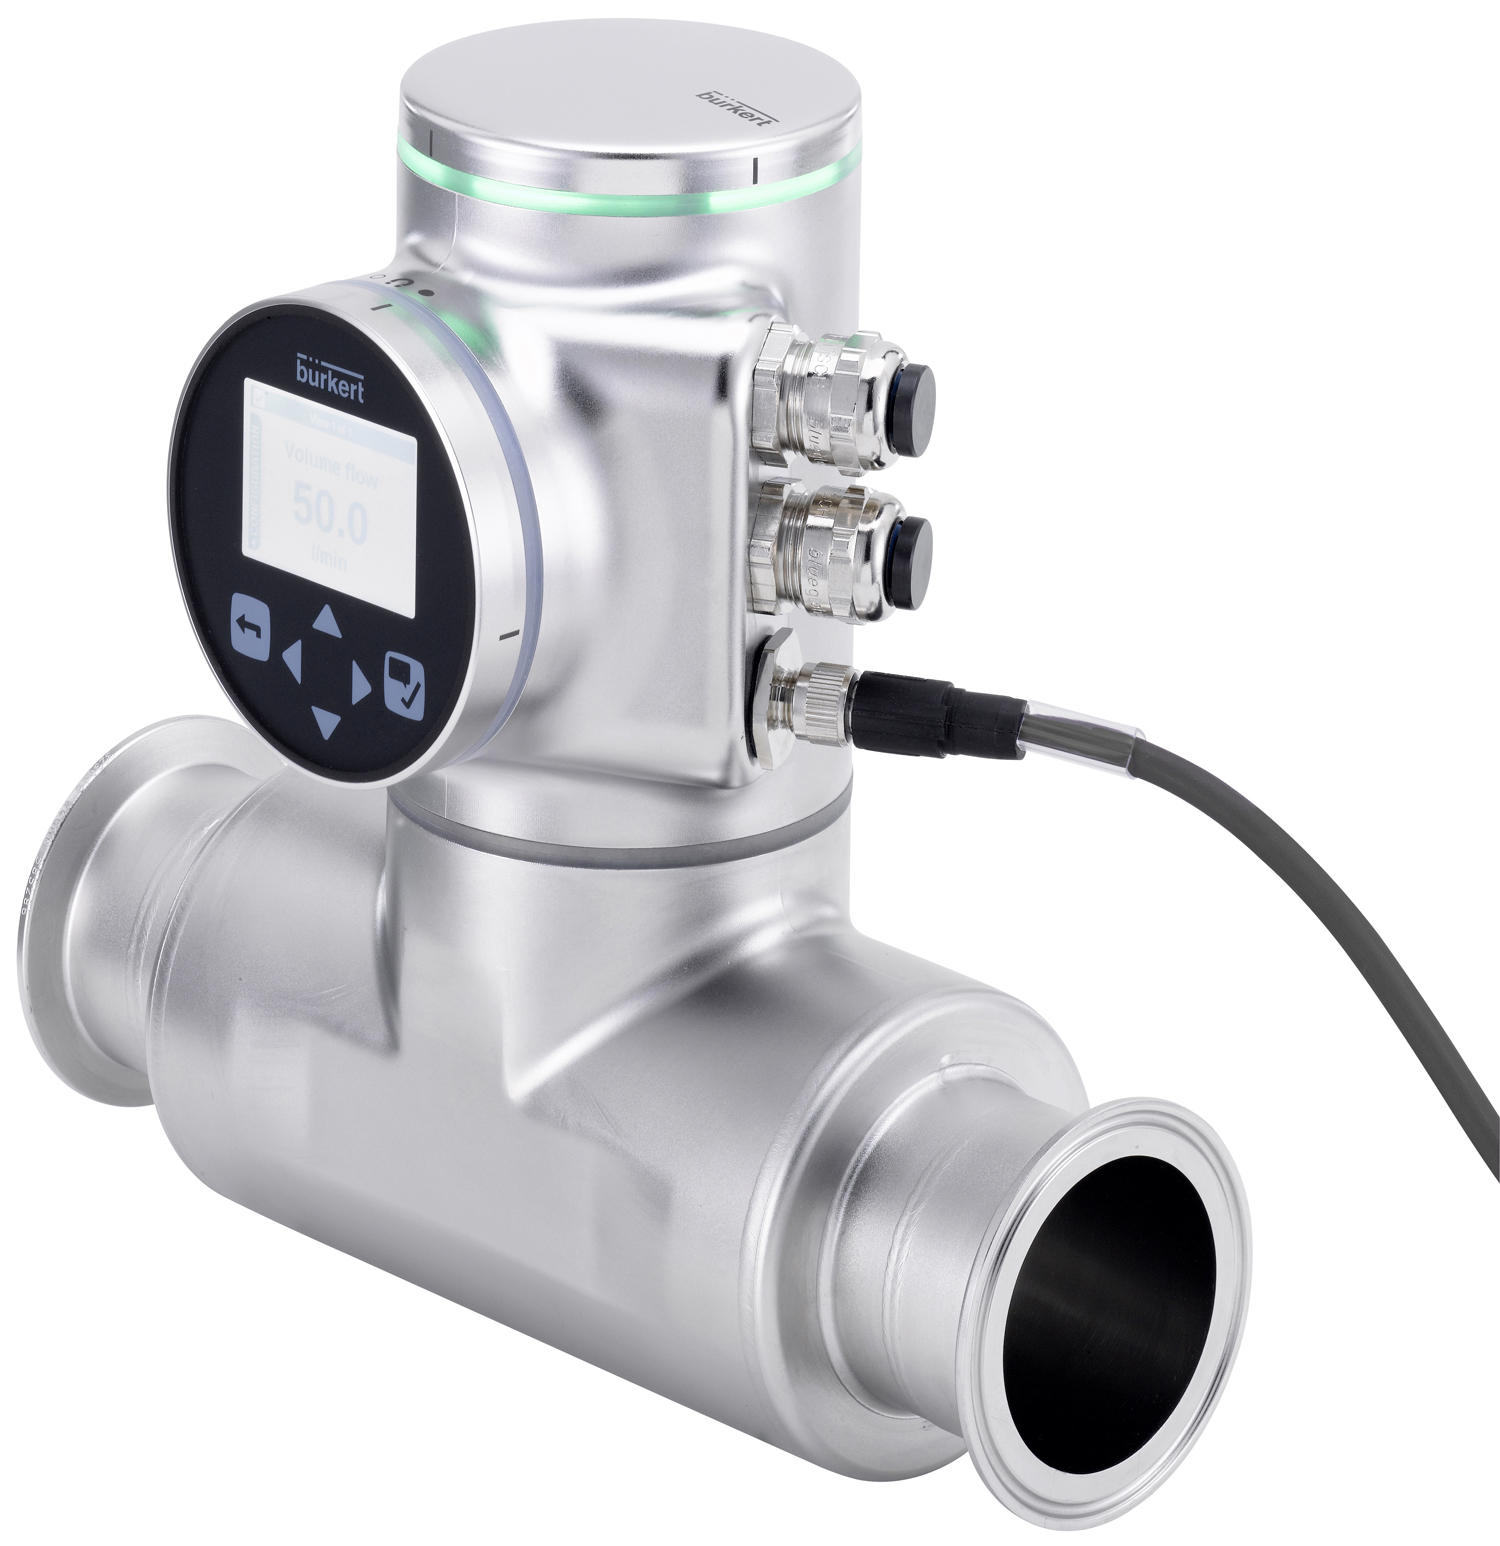 New flowmeter technology from Bürkert